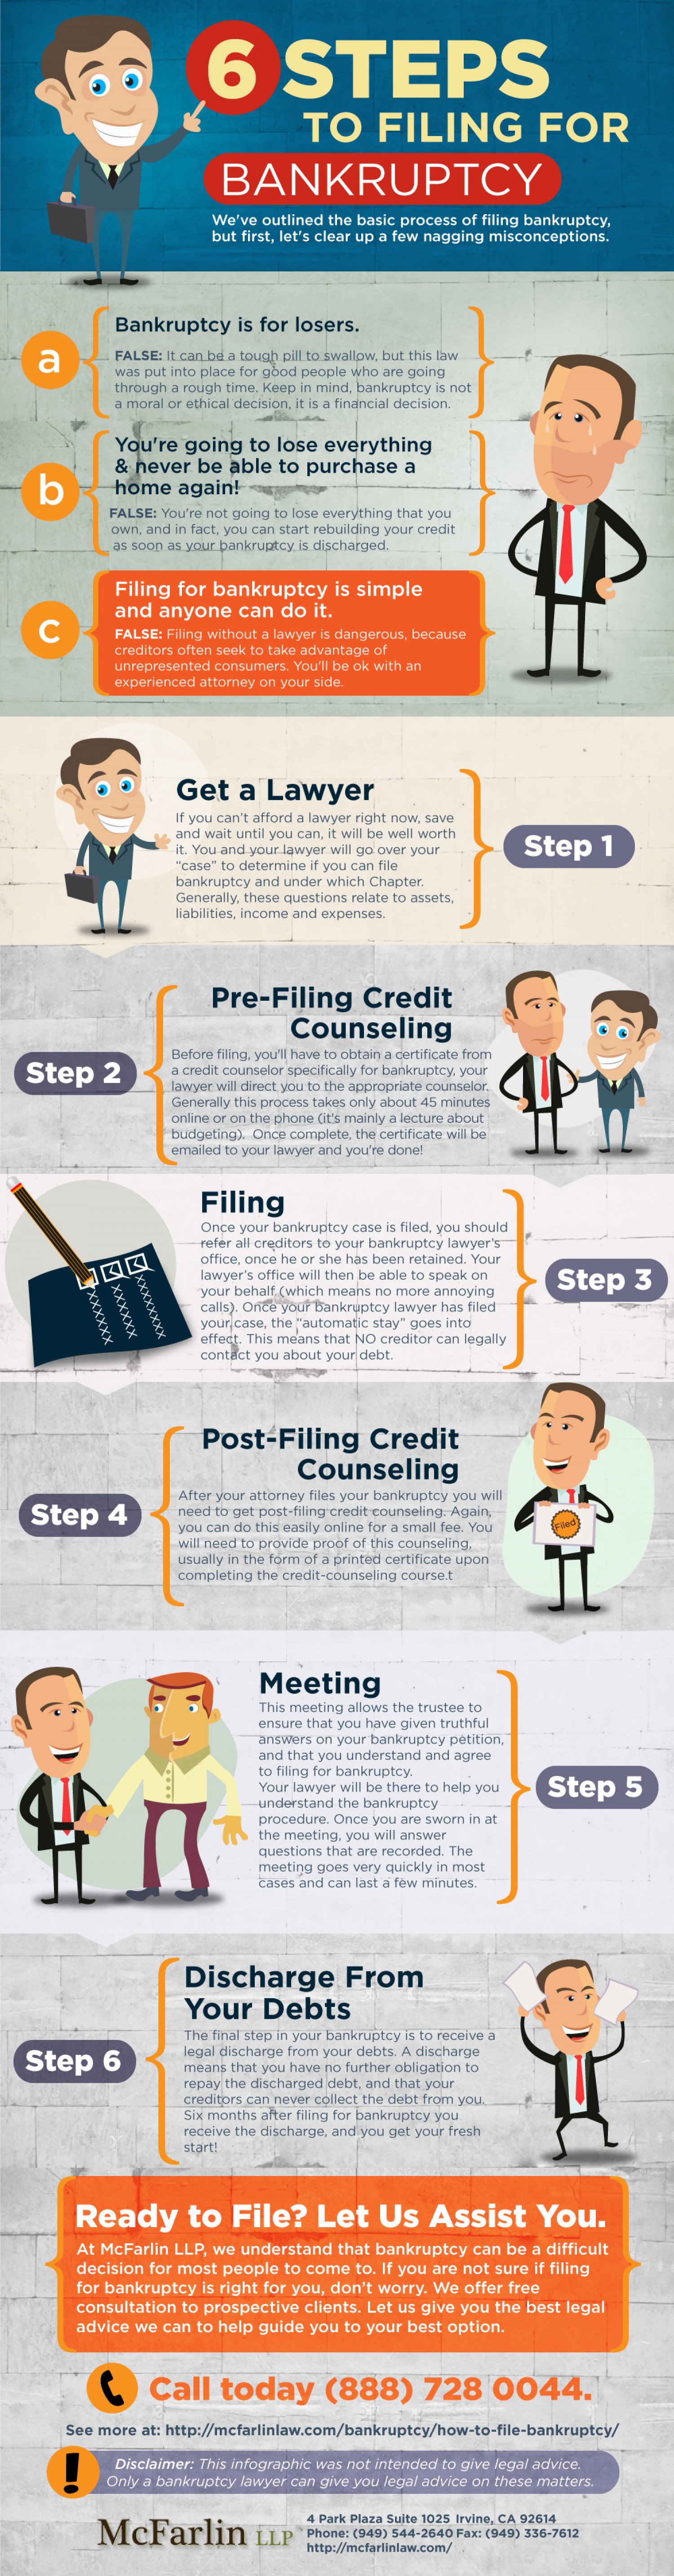 6 Steps to Filing for Bankruptcy Infographic